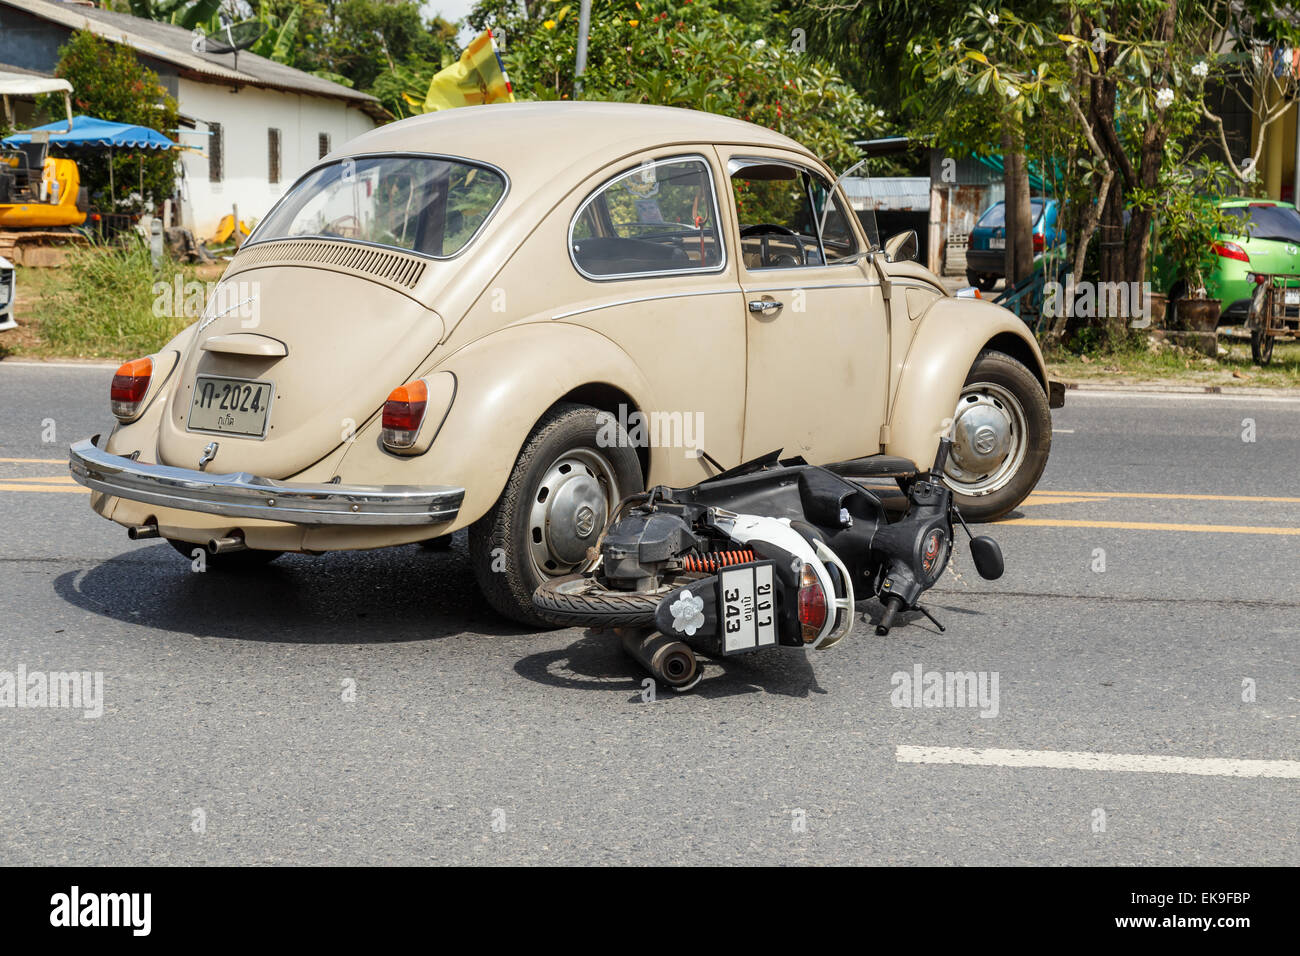 PHUKET, THAILAND - DECEMBER 17 : Car accident on the road